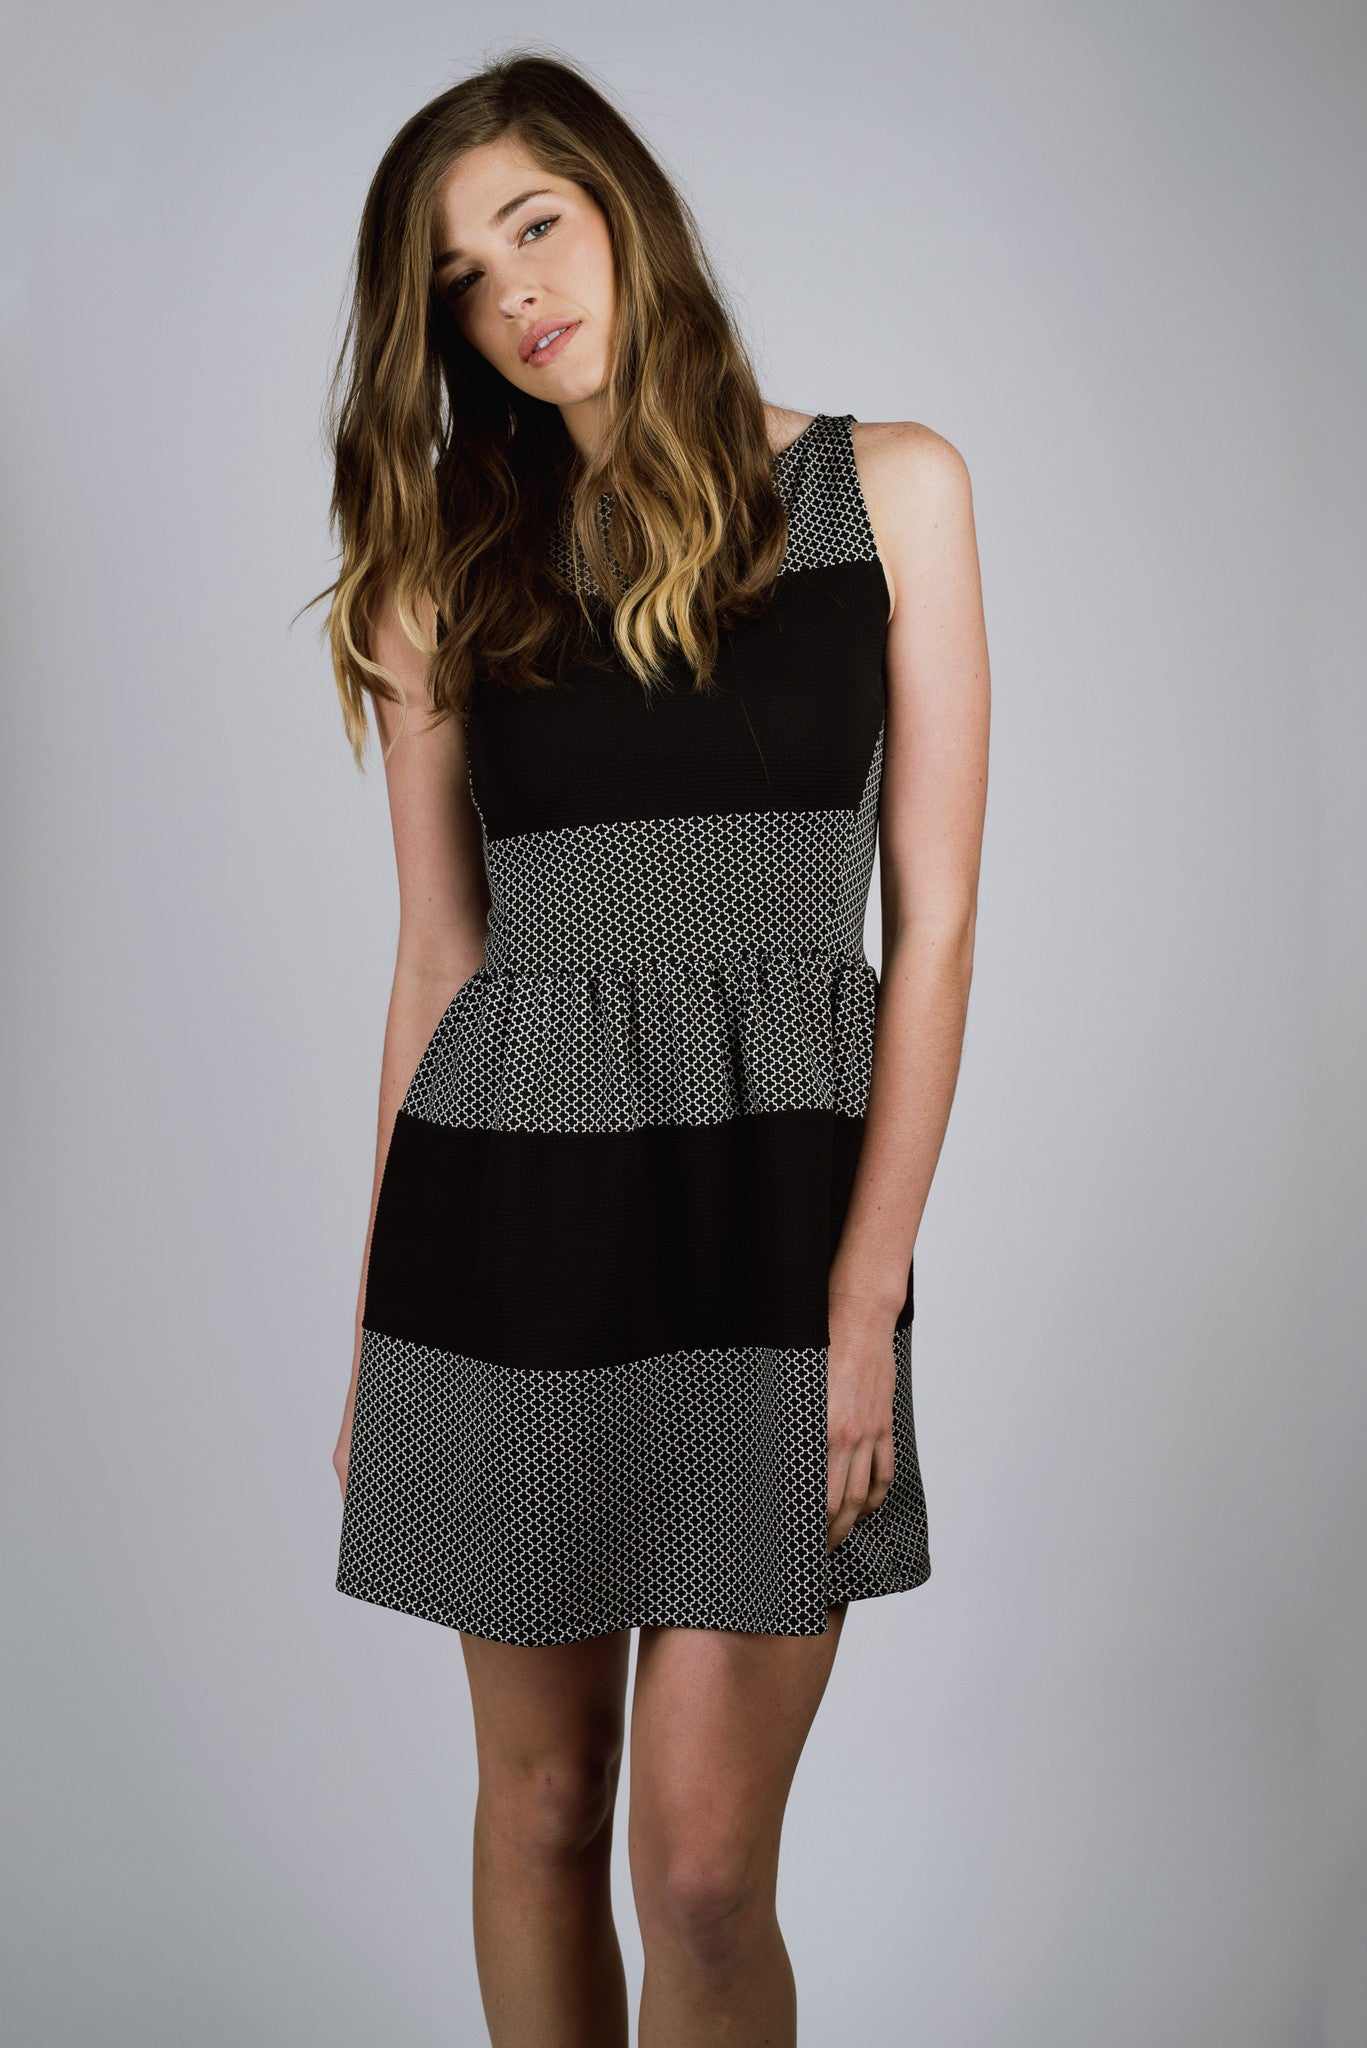 Black and White, Geometric Print, Striped Party Dress